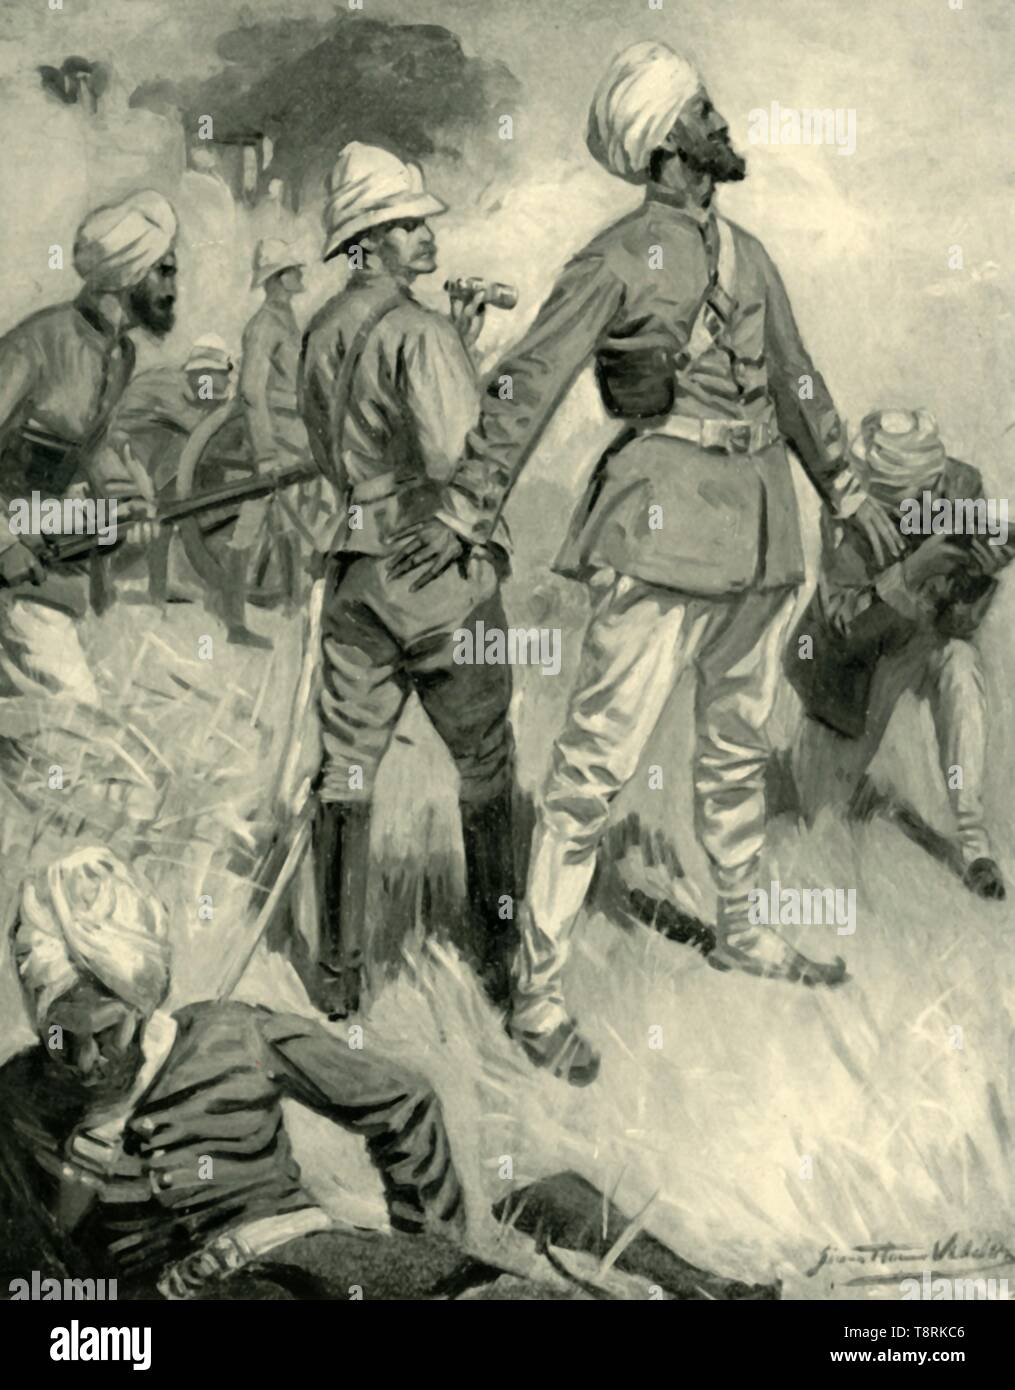 'The Devotion of General Roberts's Sikh Orderly at Spingawi', (1901). Creator: Unknown. - Stock Image